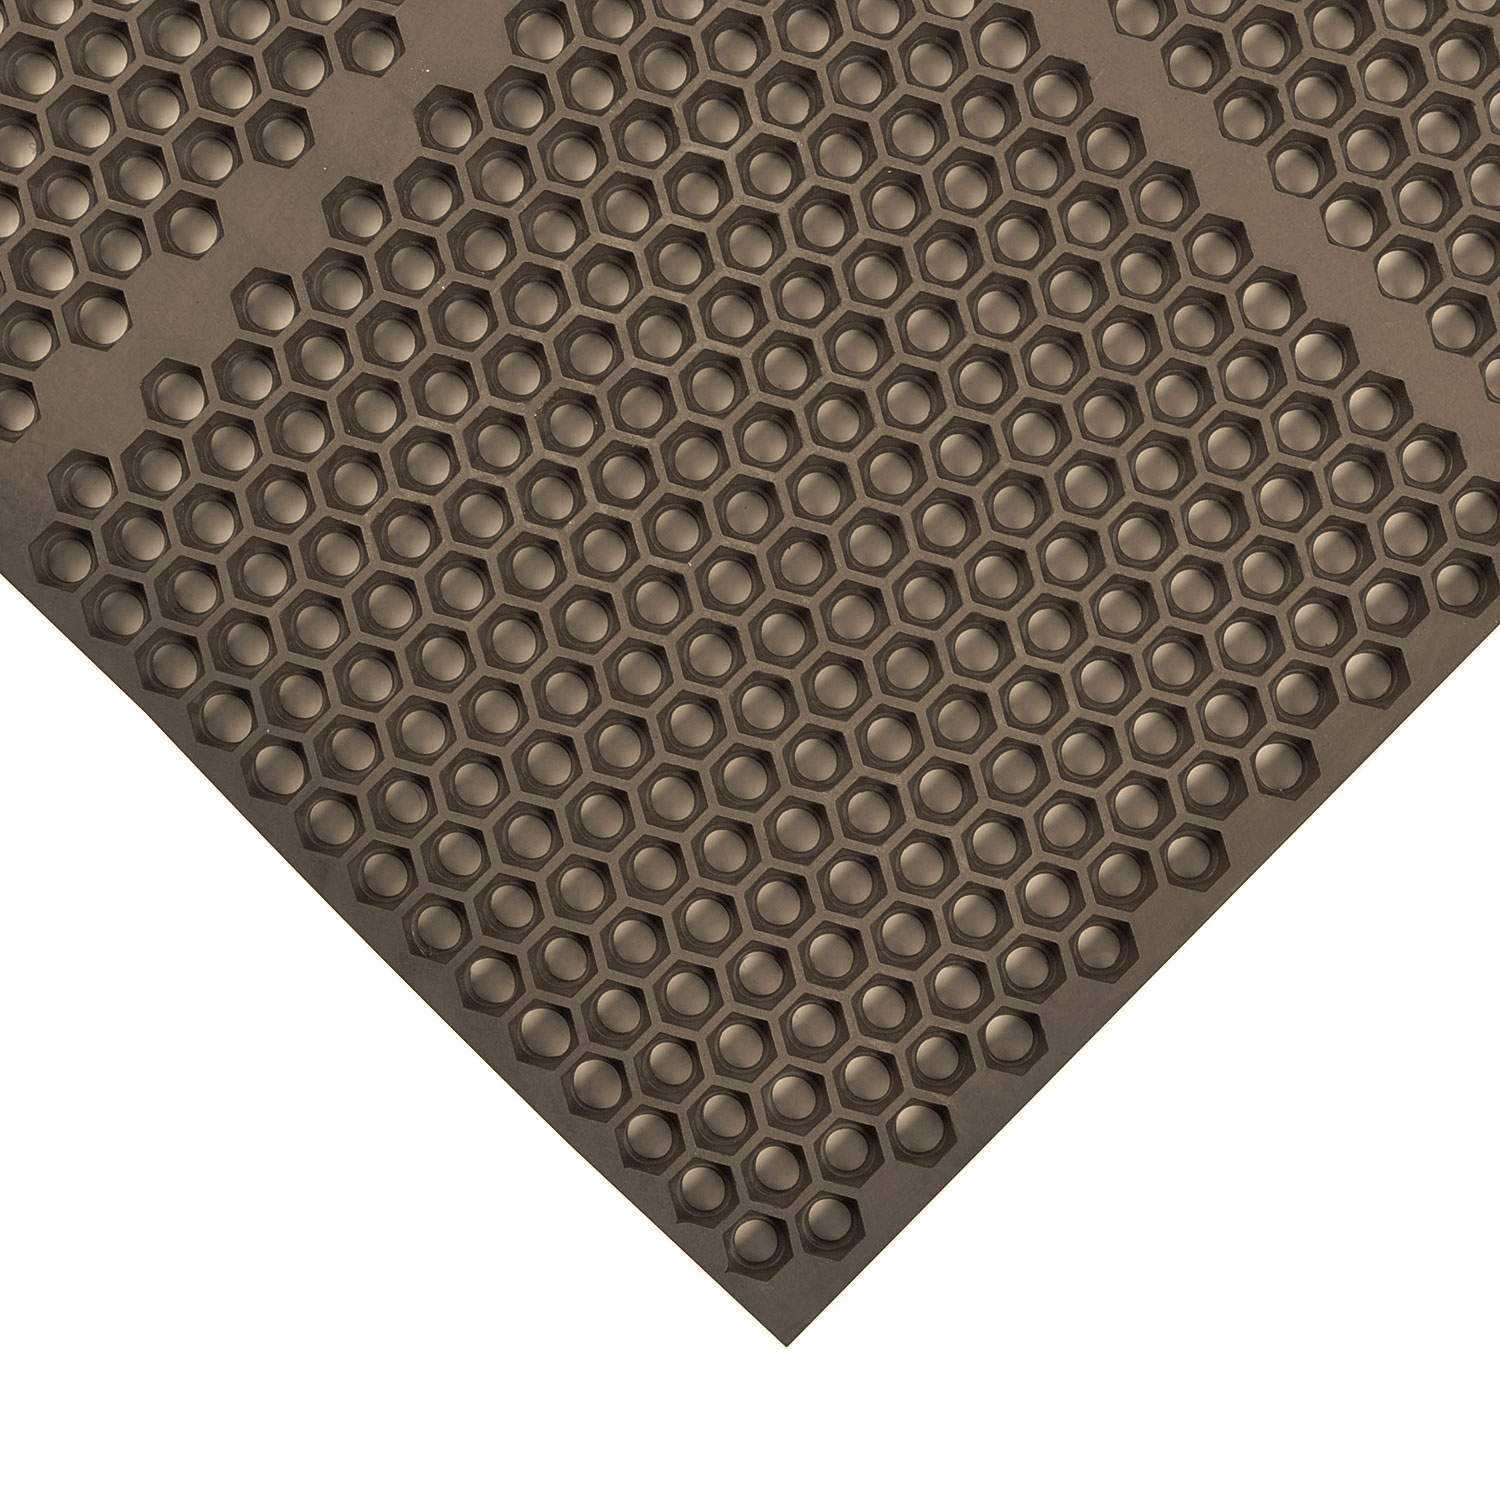 "Notrax T15U0034BR Optimat Grease-Resistant Floor Mat, 36 x 48 in, 1/2"" Thick, Brown"